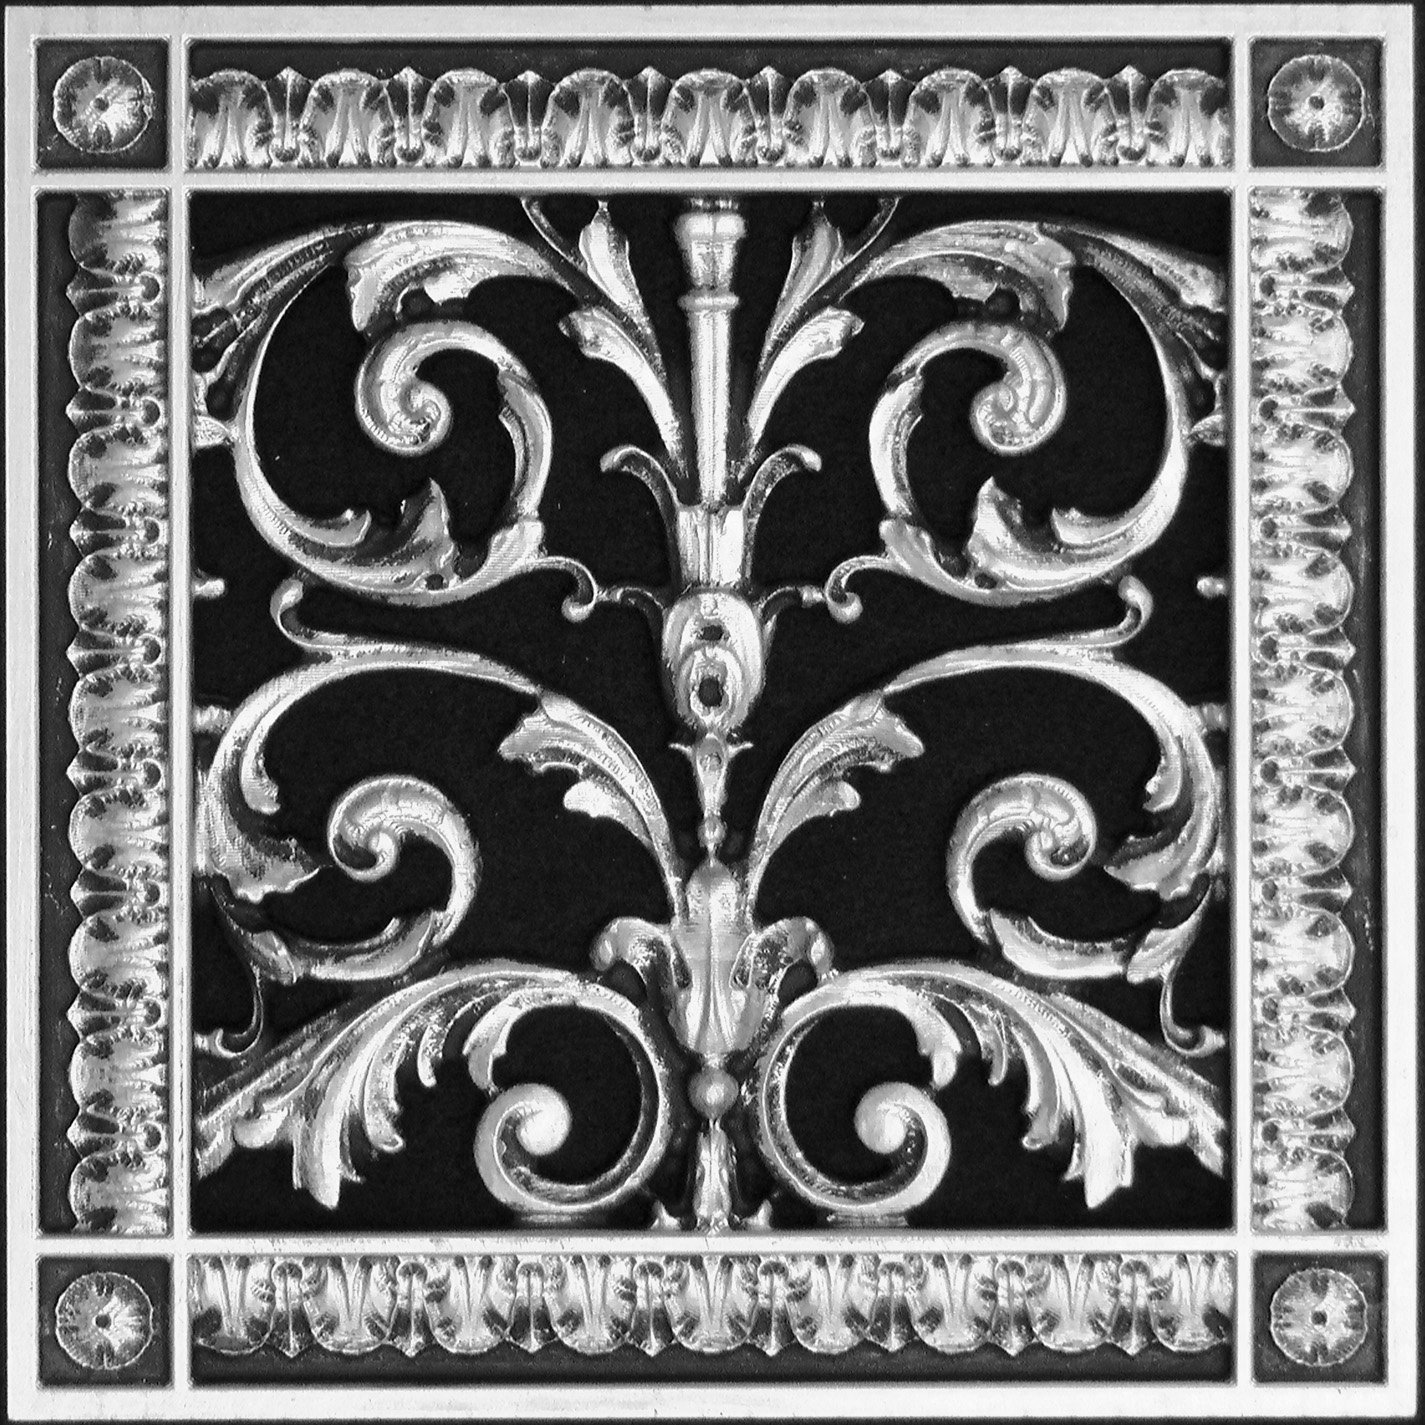 """Decorative Vent Cover, Grille, made of Urethane Resin in Louis XIV, French style fits over a 10""""x 10"""", Total size, 12"""" by 12"""", for wall & ceiling installation only. (not for floors) (Nickel)"""